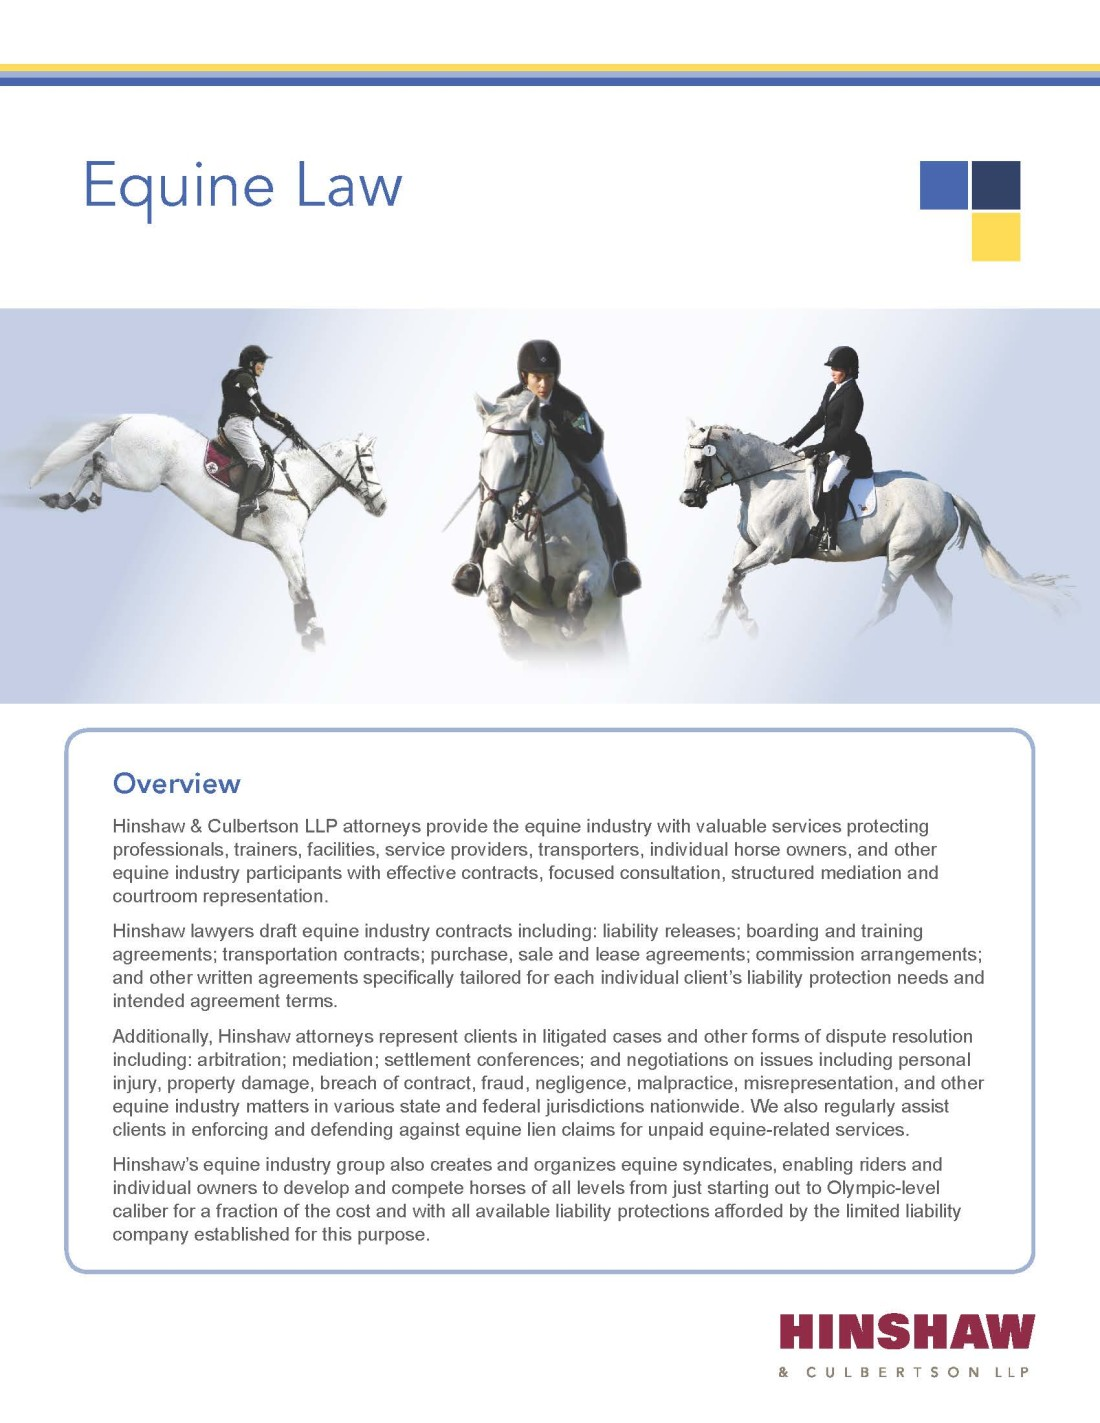 Equine Law Brochure cover